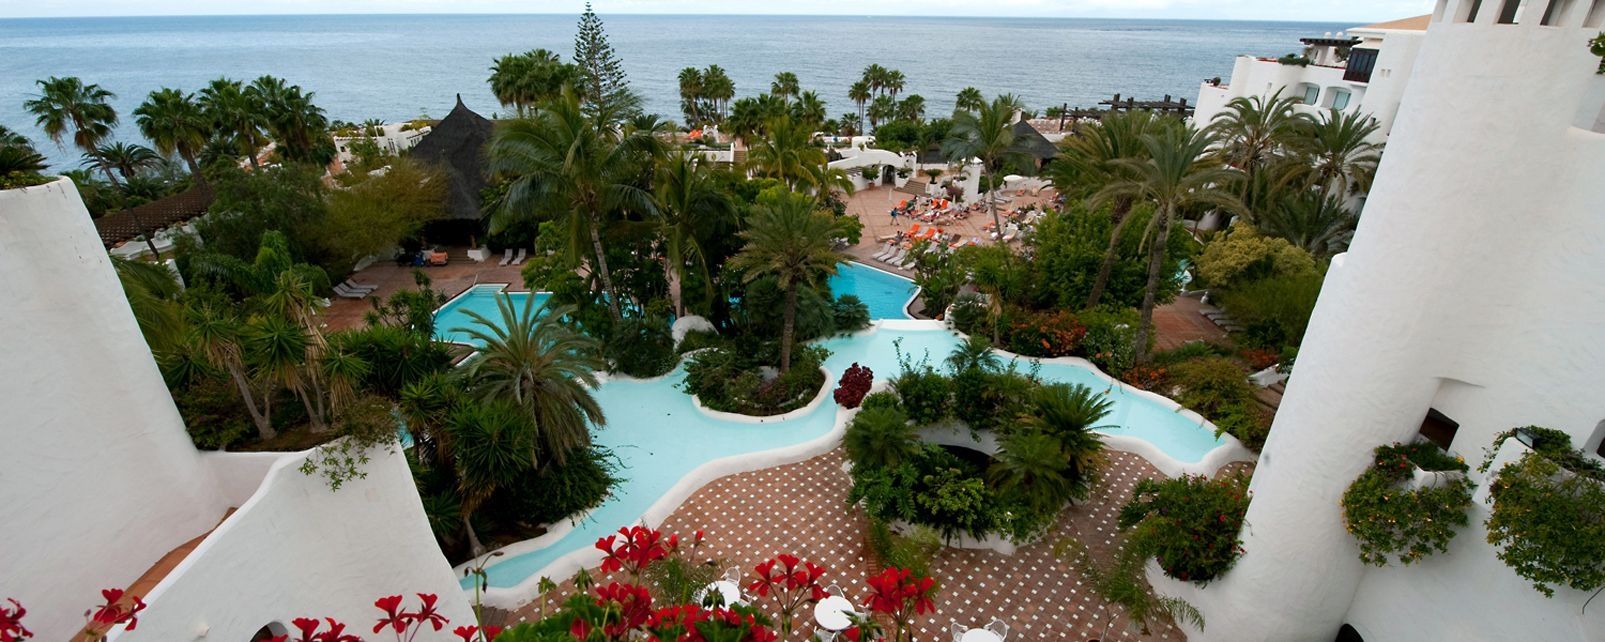 Hotel jardin tropical in costa adeje for Jardin tropical